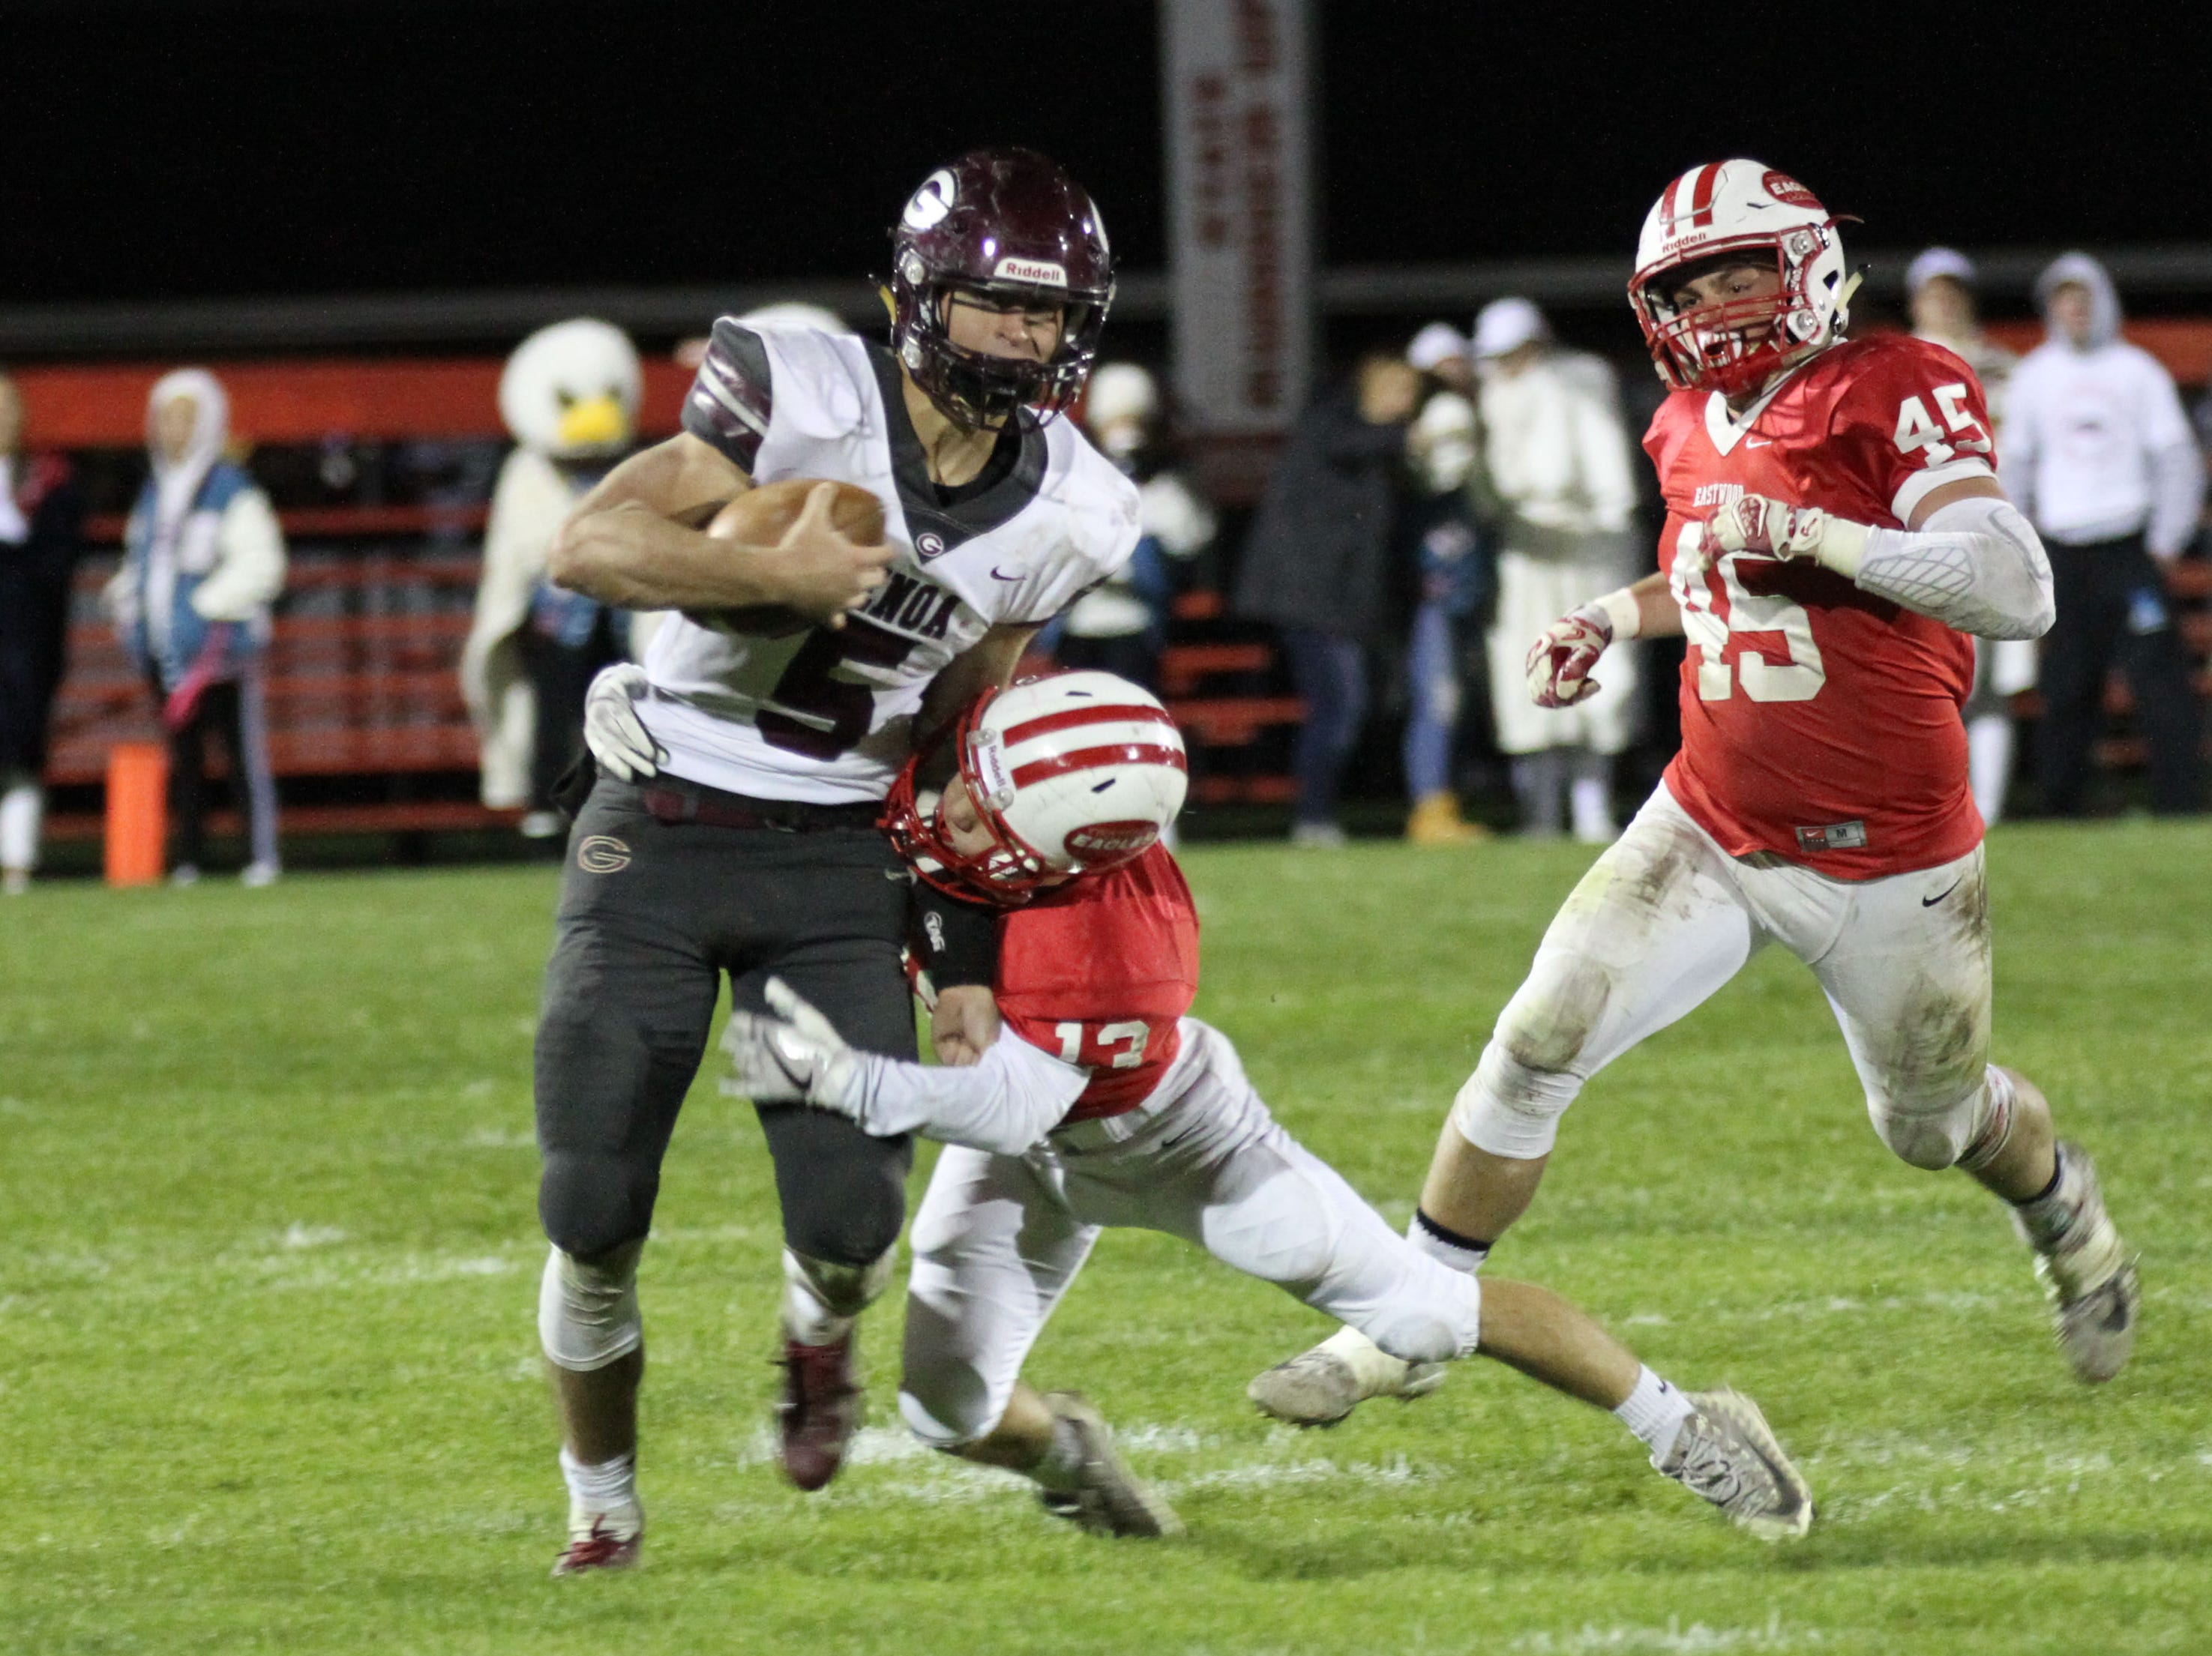 Genoa's Jacob Plantz carries the football against Eastwood.